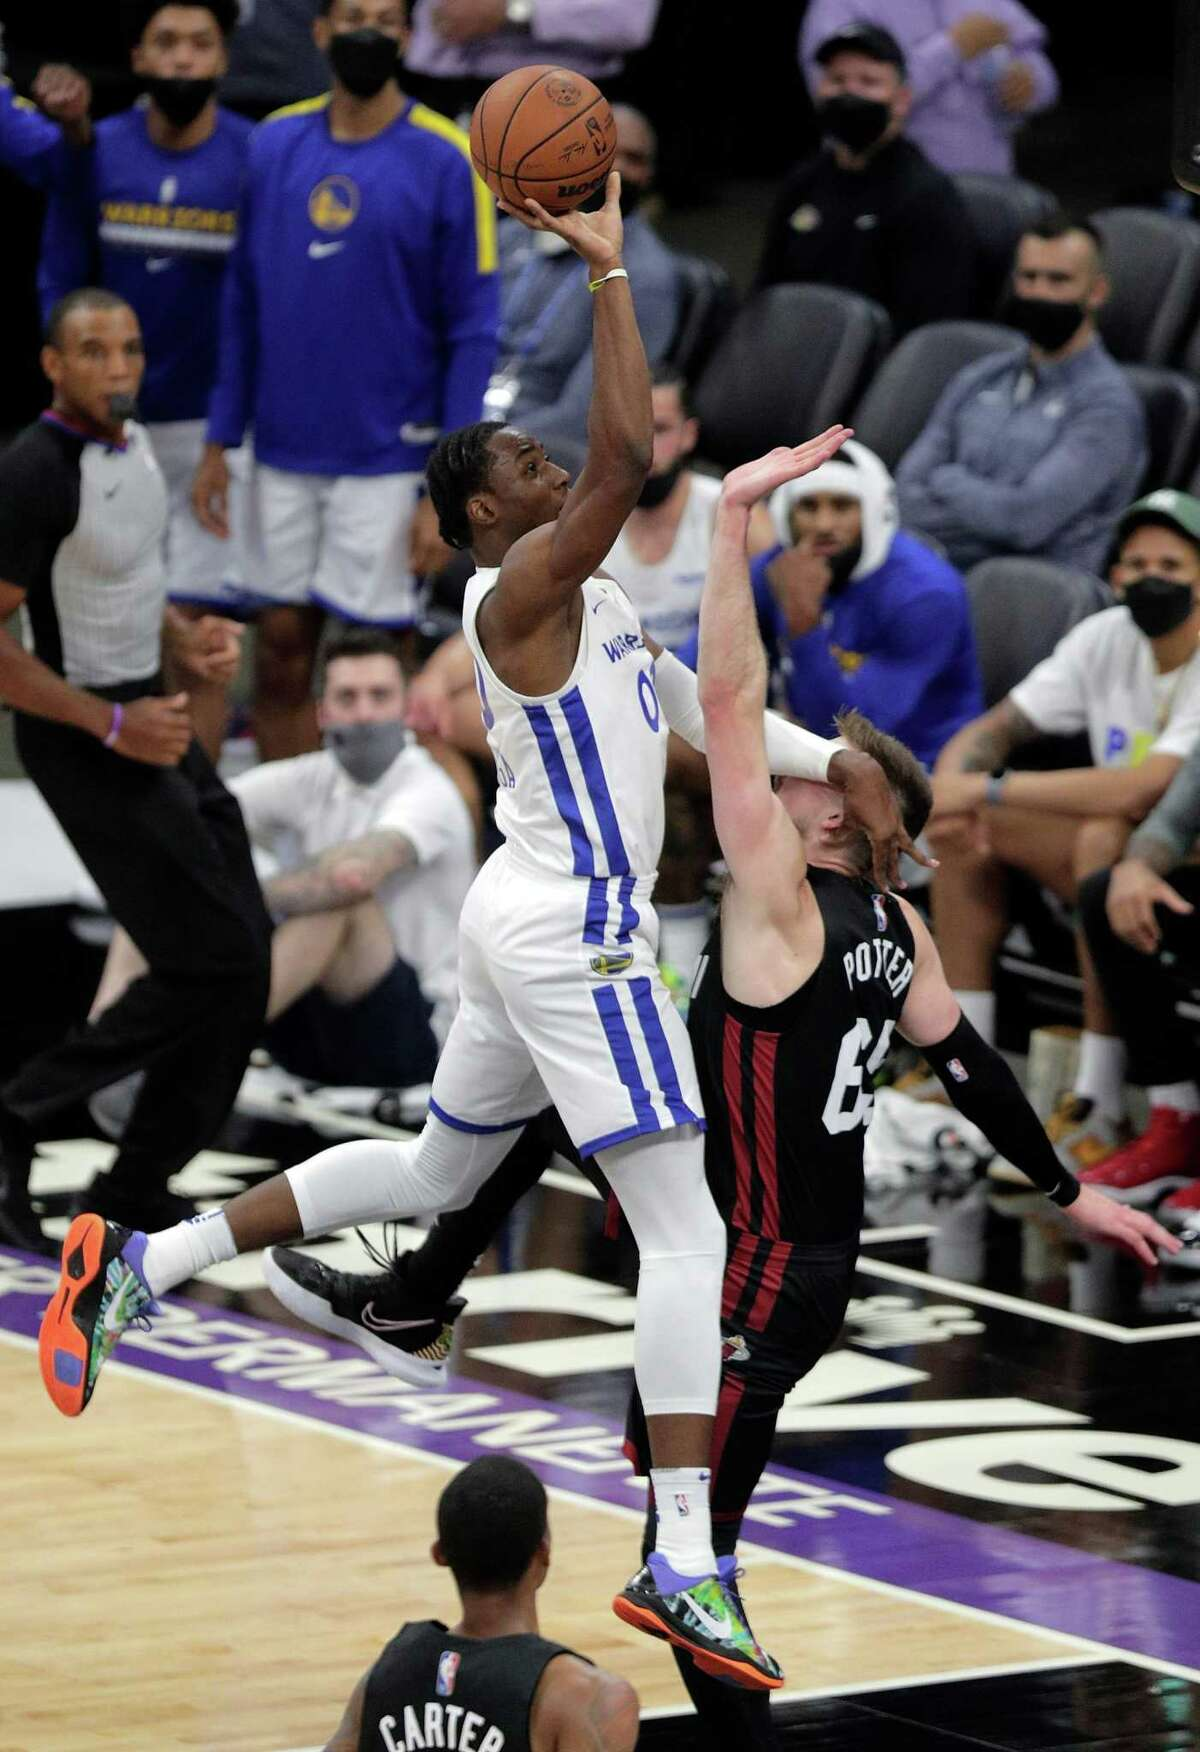 Jonathan Kuminga (00) puts a shot up over Micah Potter (65) in the first half as the Golden State Warriors summer league played the Miami Heat Summer league in the 2021 California Classic at Golden 1 Center in Sacramento, Calif., on Wednesday, August 4, 2021.